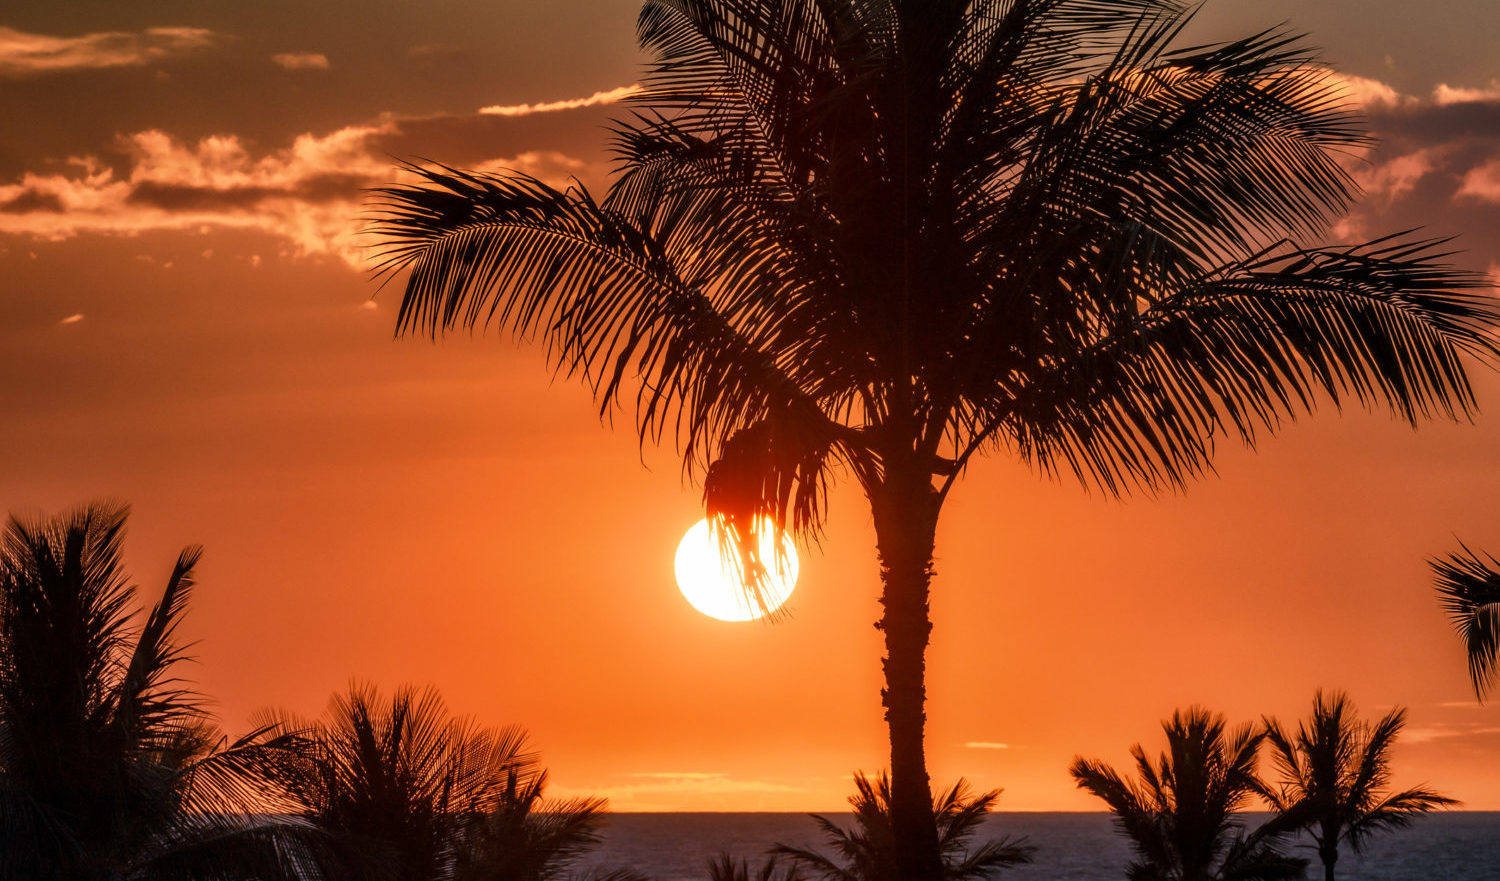 Beautiful sunset with palm tree silhouette against red sky on a tropical beach location